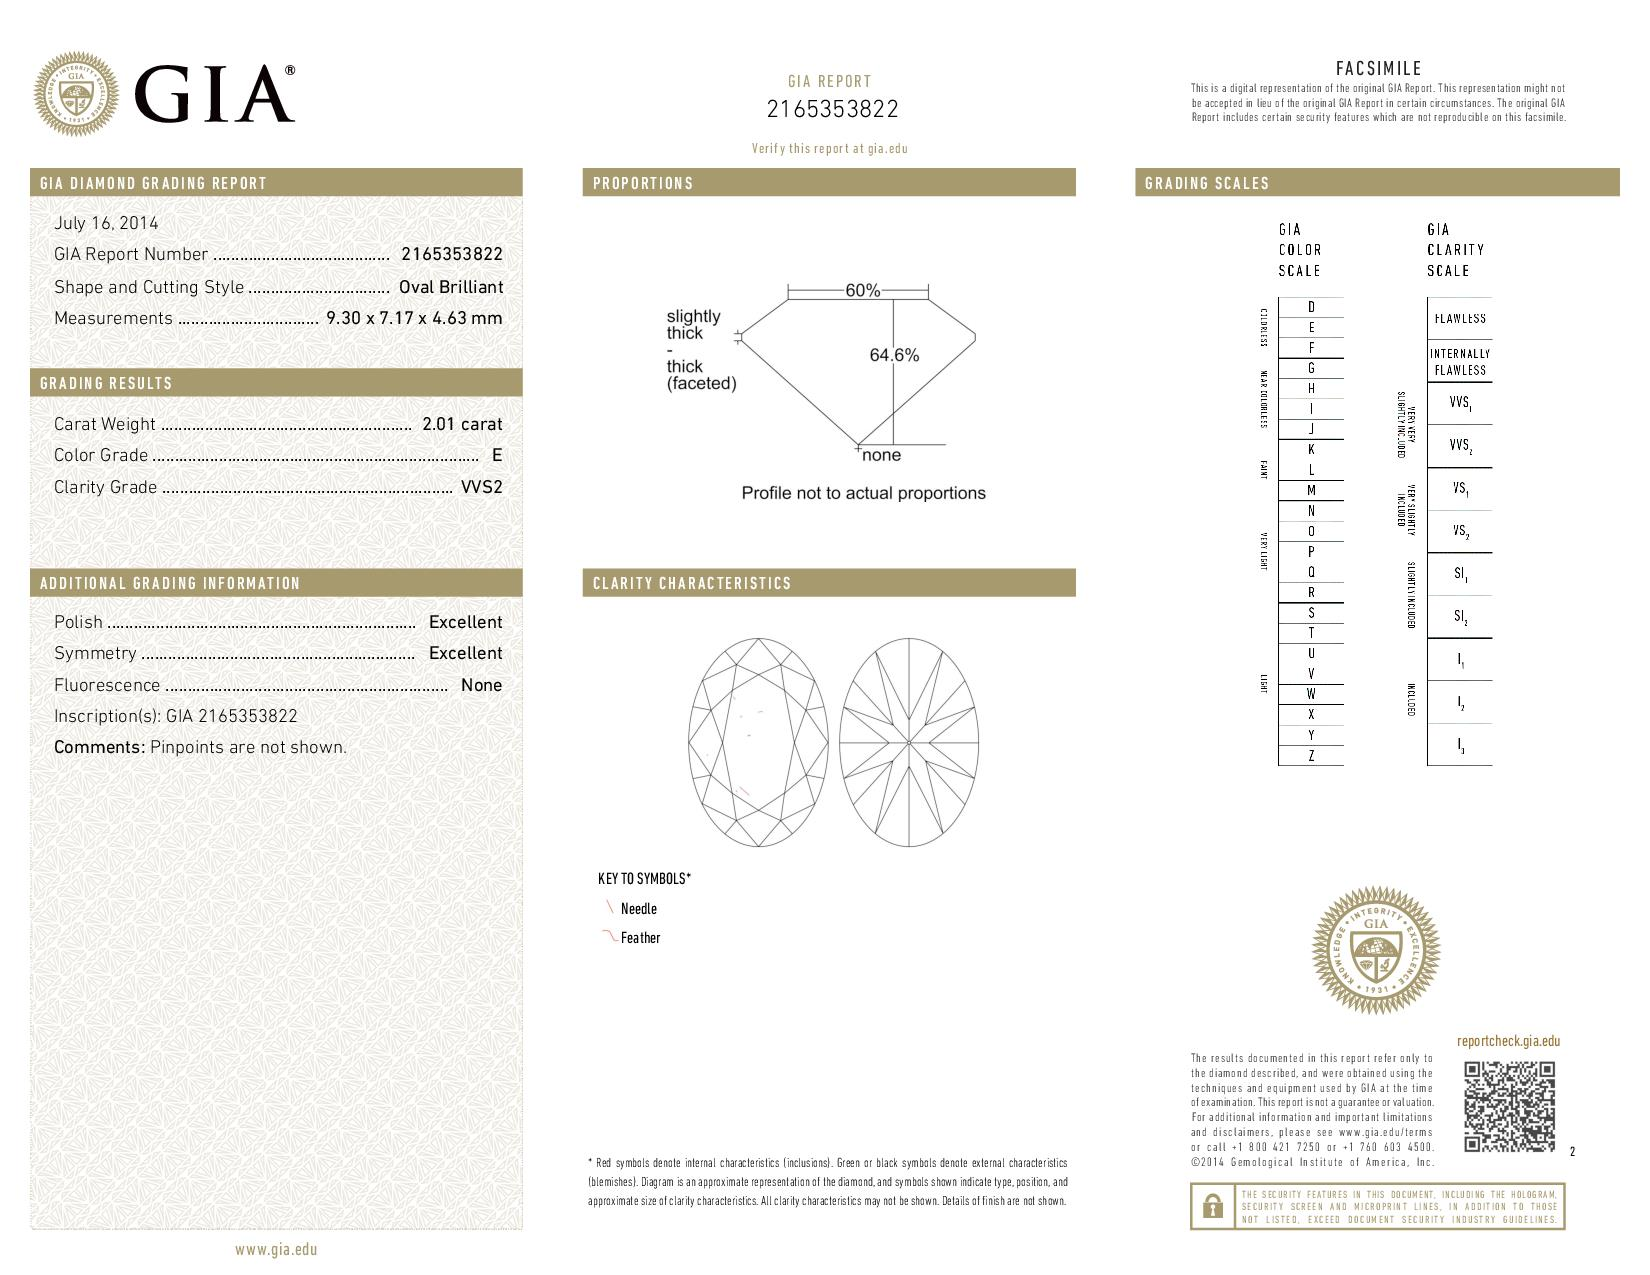 This is a 2.01 carat oval shape, E color, VVS2 clarity natural diamond accompanied by a GIA grading report.